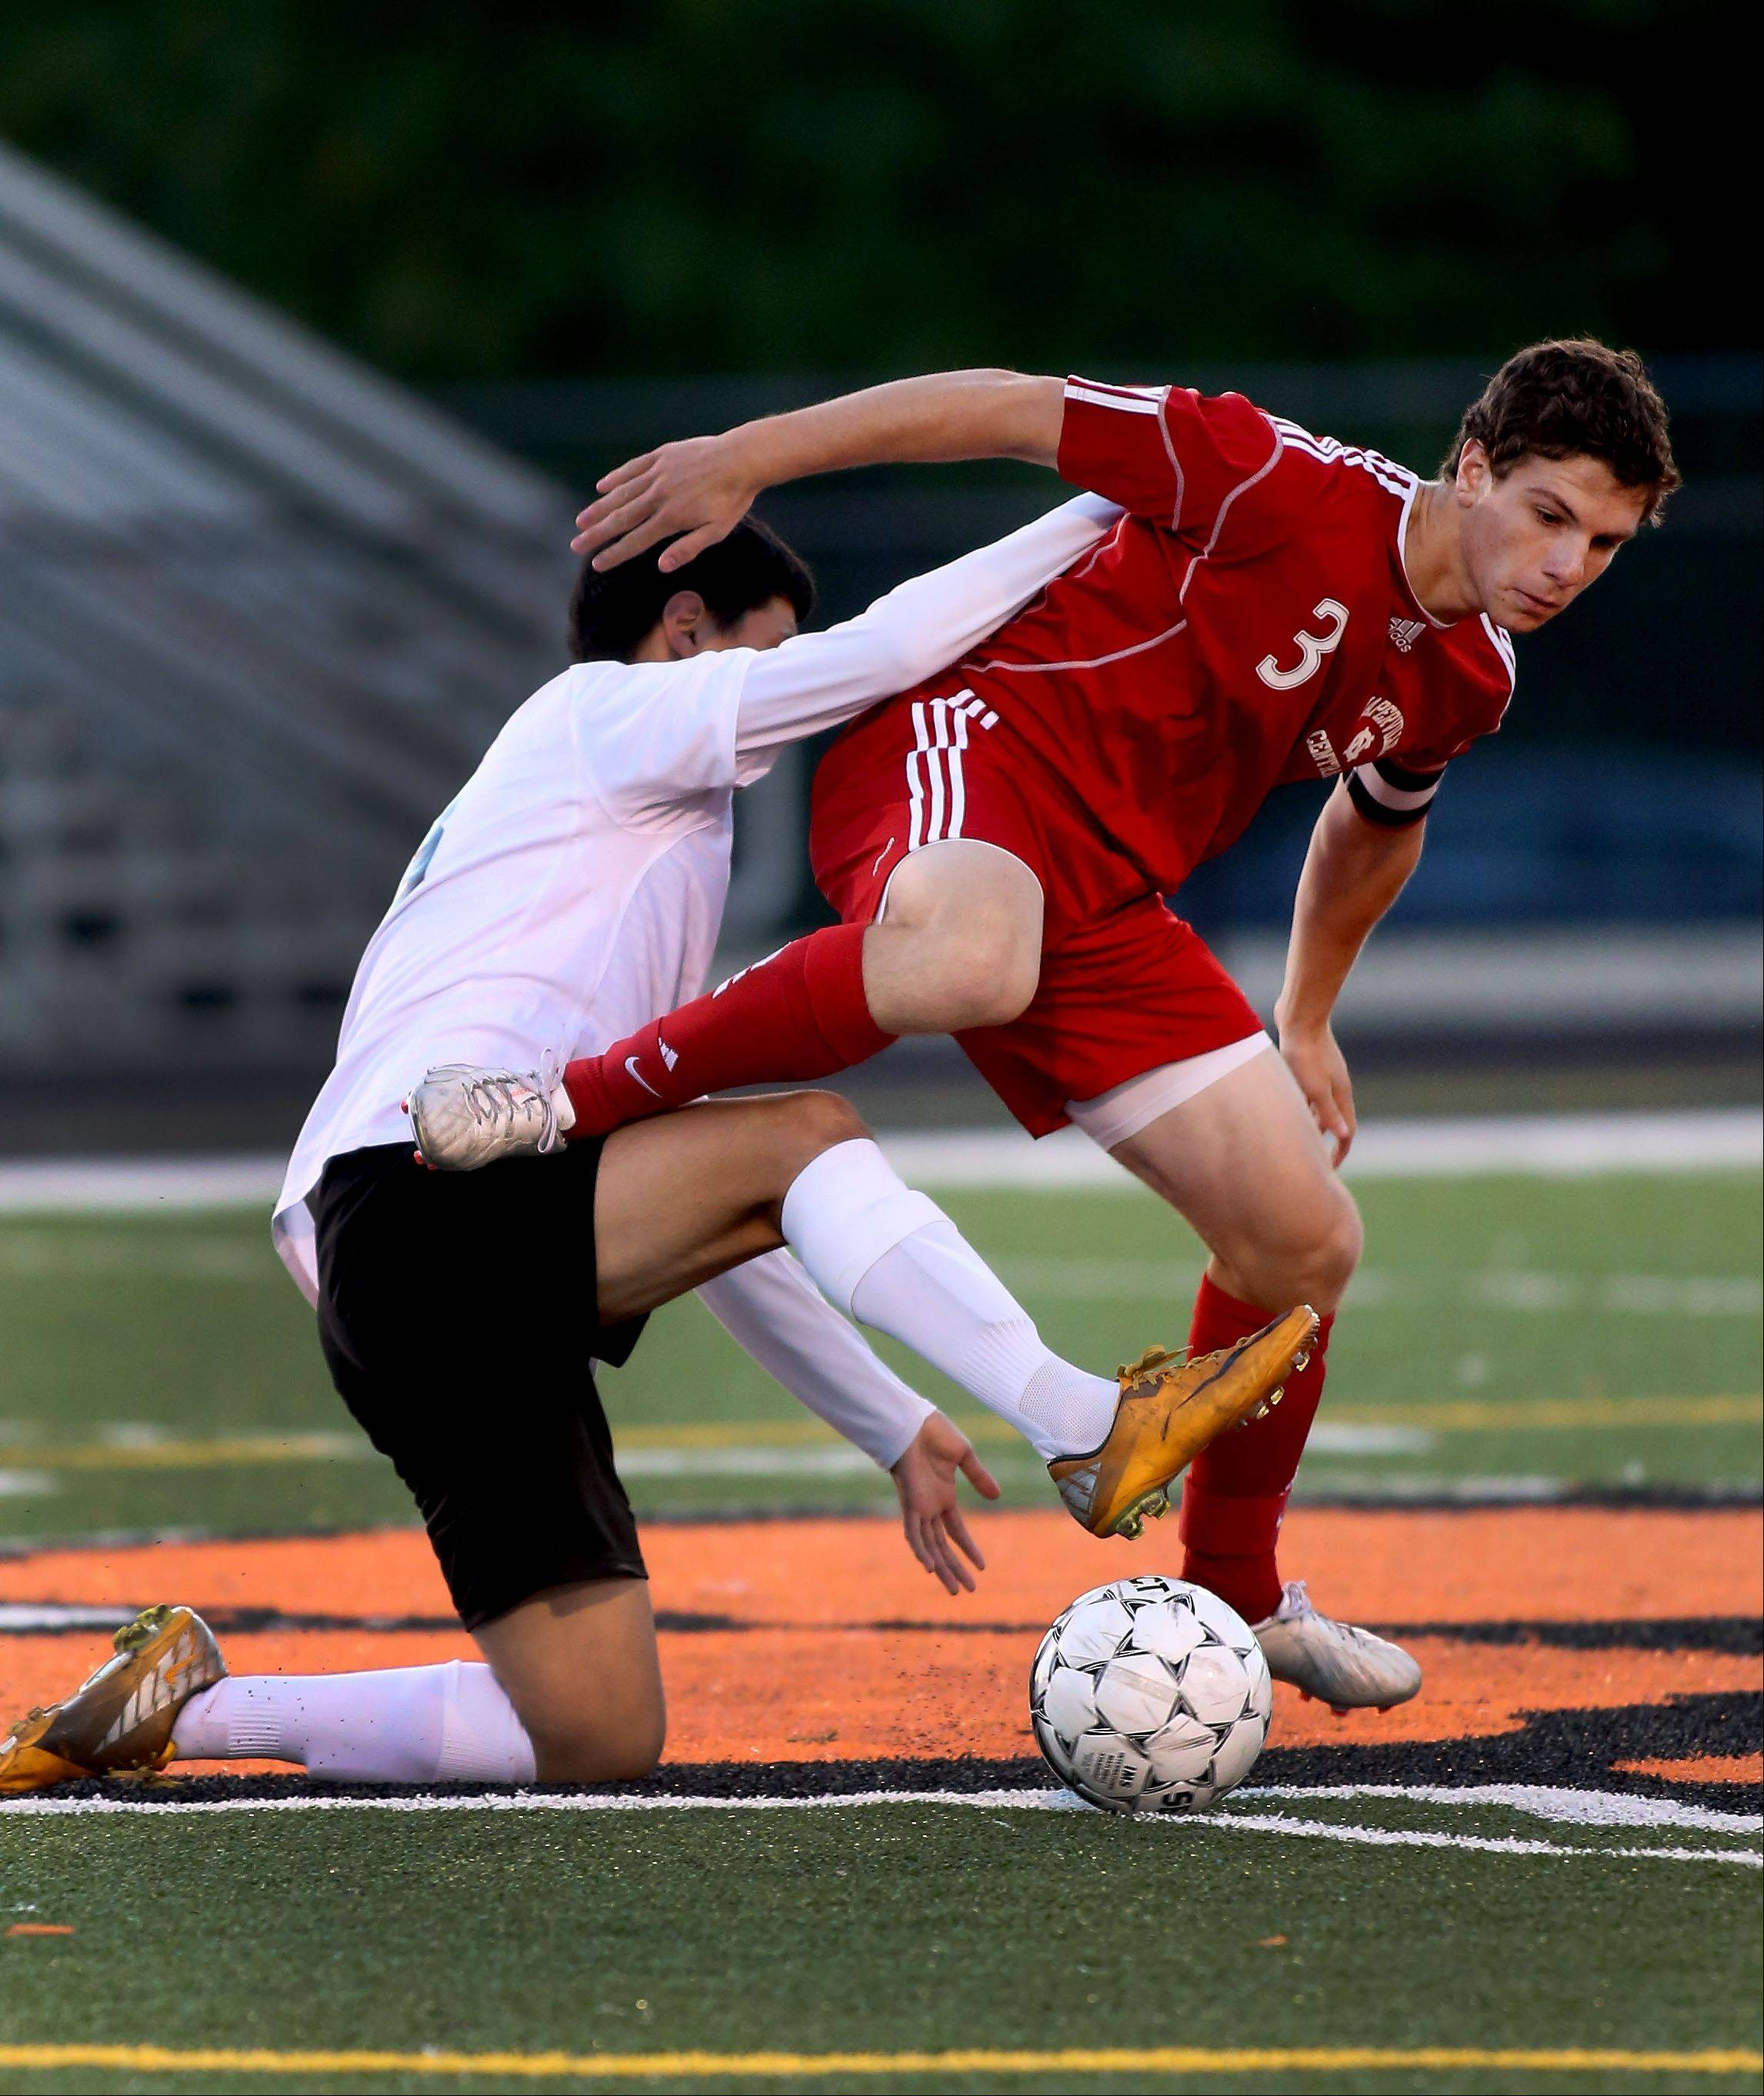 Jay Tegge of Naperville Central gets tangled up with Jose Perez, left, of Wheaton Warrenville South during boys soccer action on Tuesday in Wheaton.